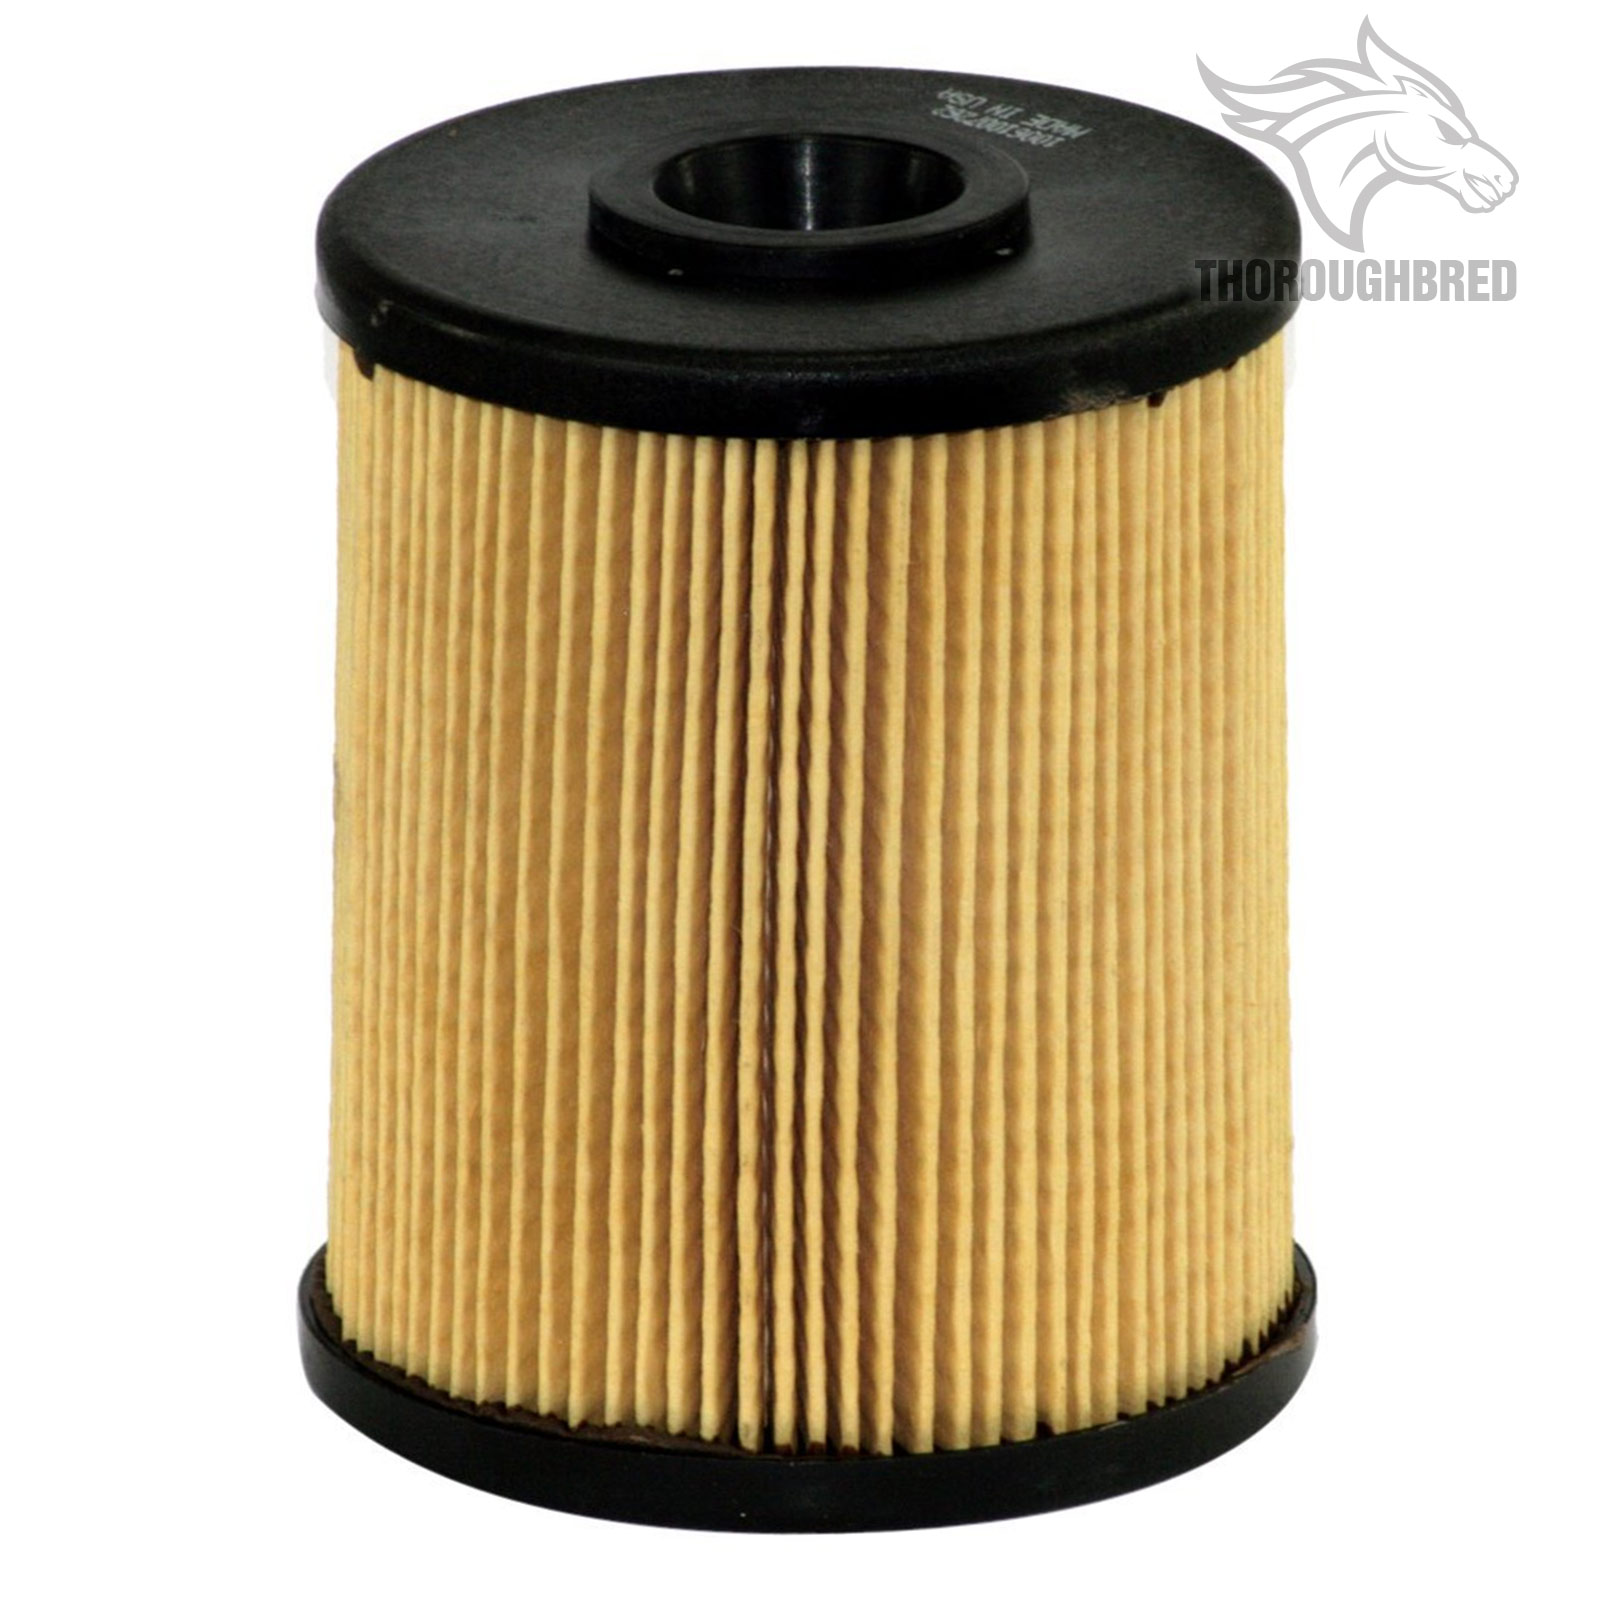 hight resolution of afe fuel filter pro guard 2 diesel frame mount 3 micron sythetic 44 ff010